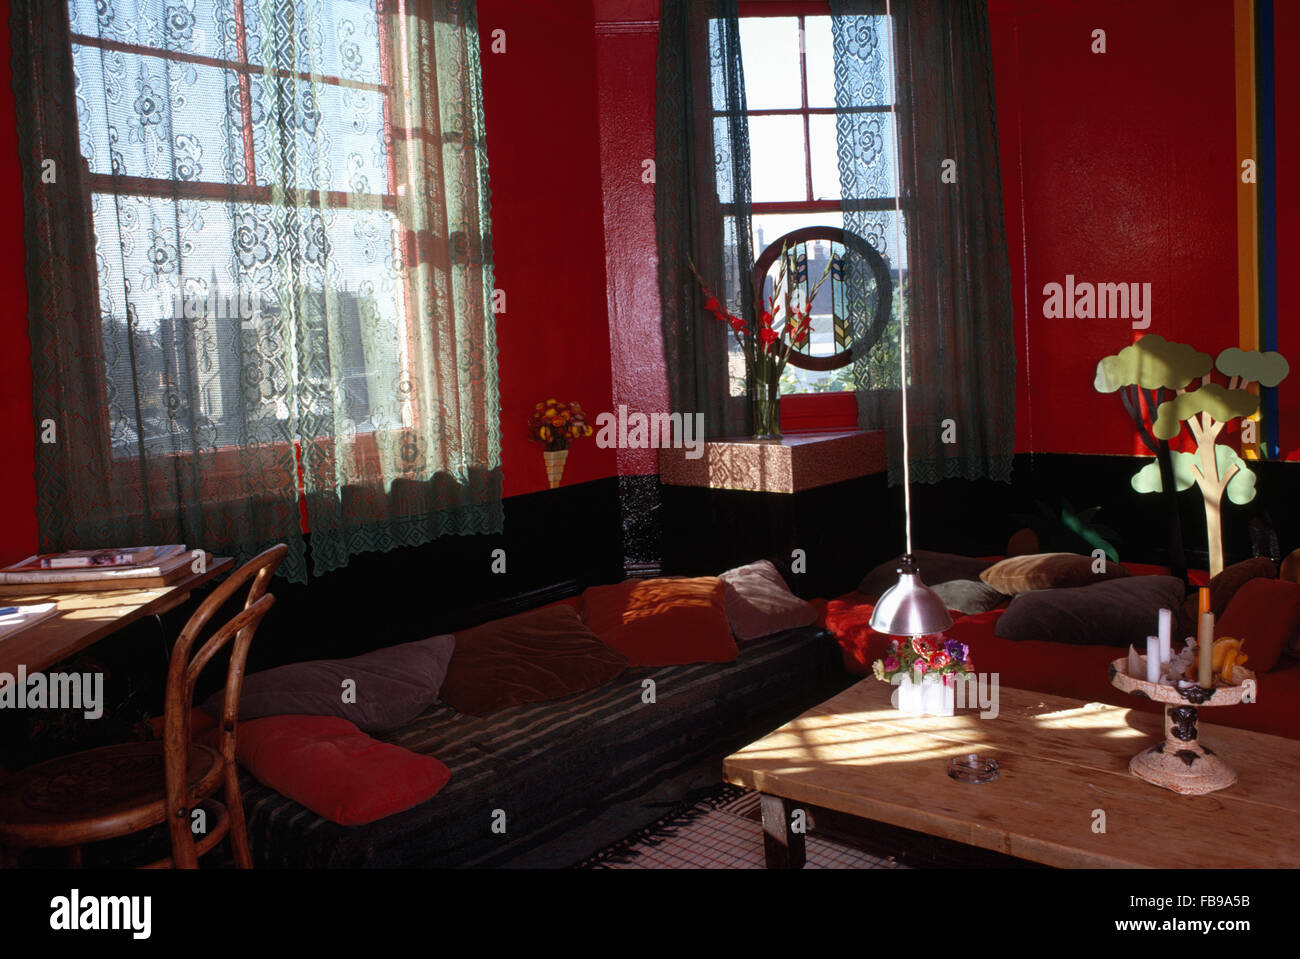 Lace Curtains On Window Above Cushions On Divan Sofa In Red Sixties  Apartment Living Room